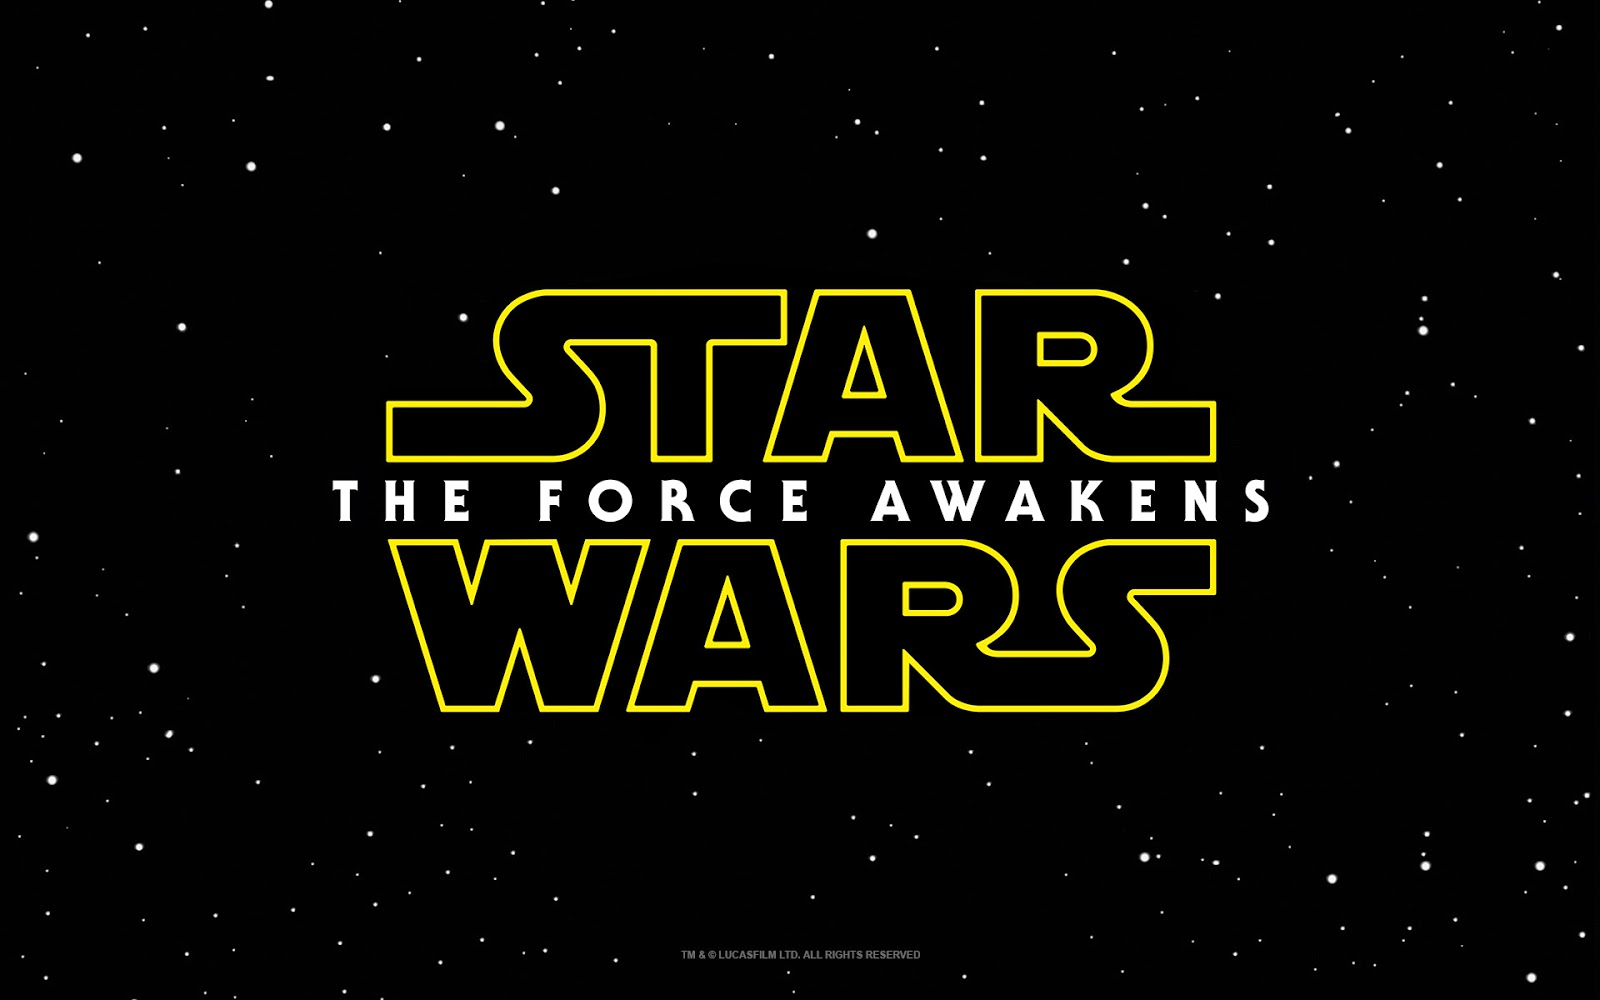 http://okoknoinc.blogspot.com/2015/04/watch-star-wars-force-awakens-trailer.html